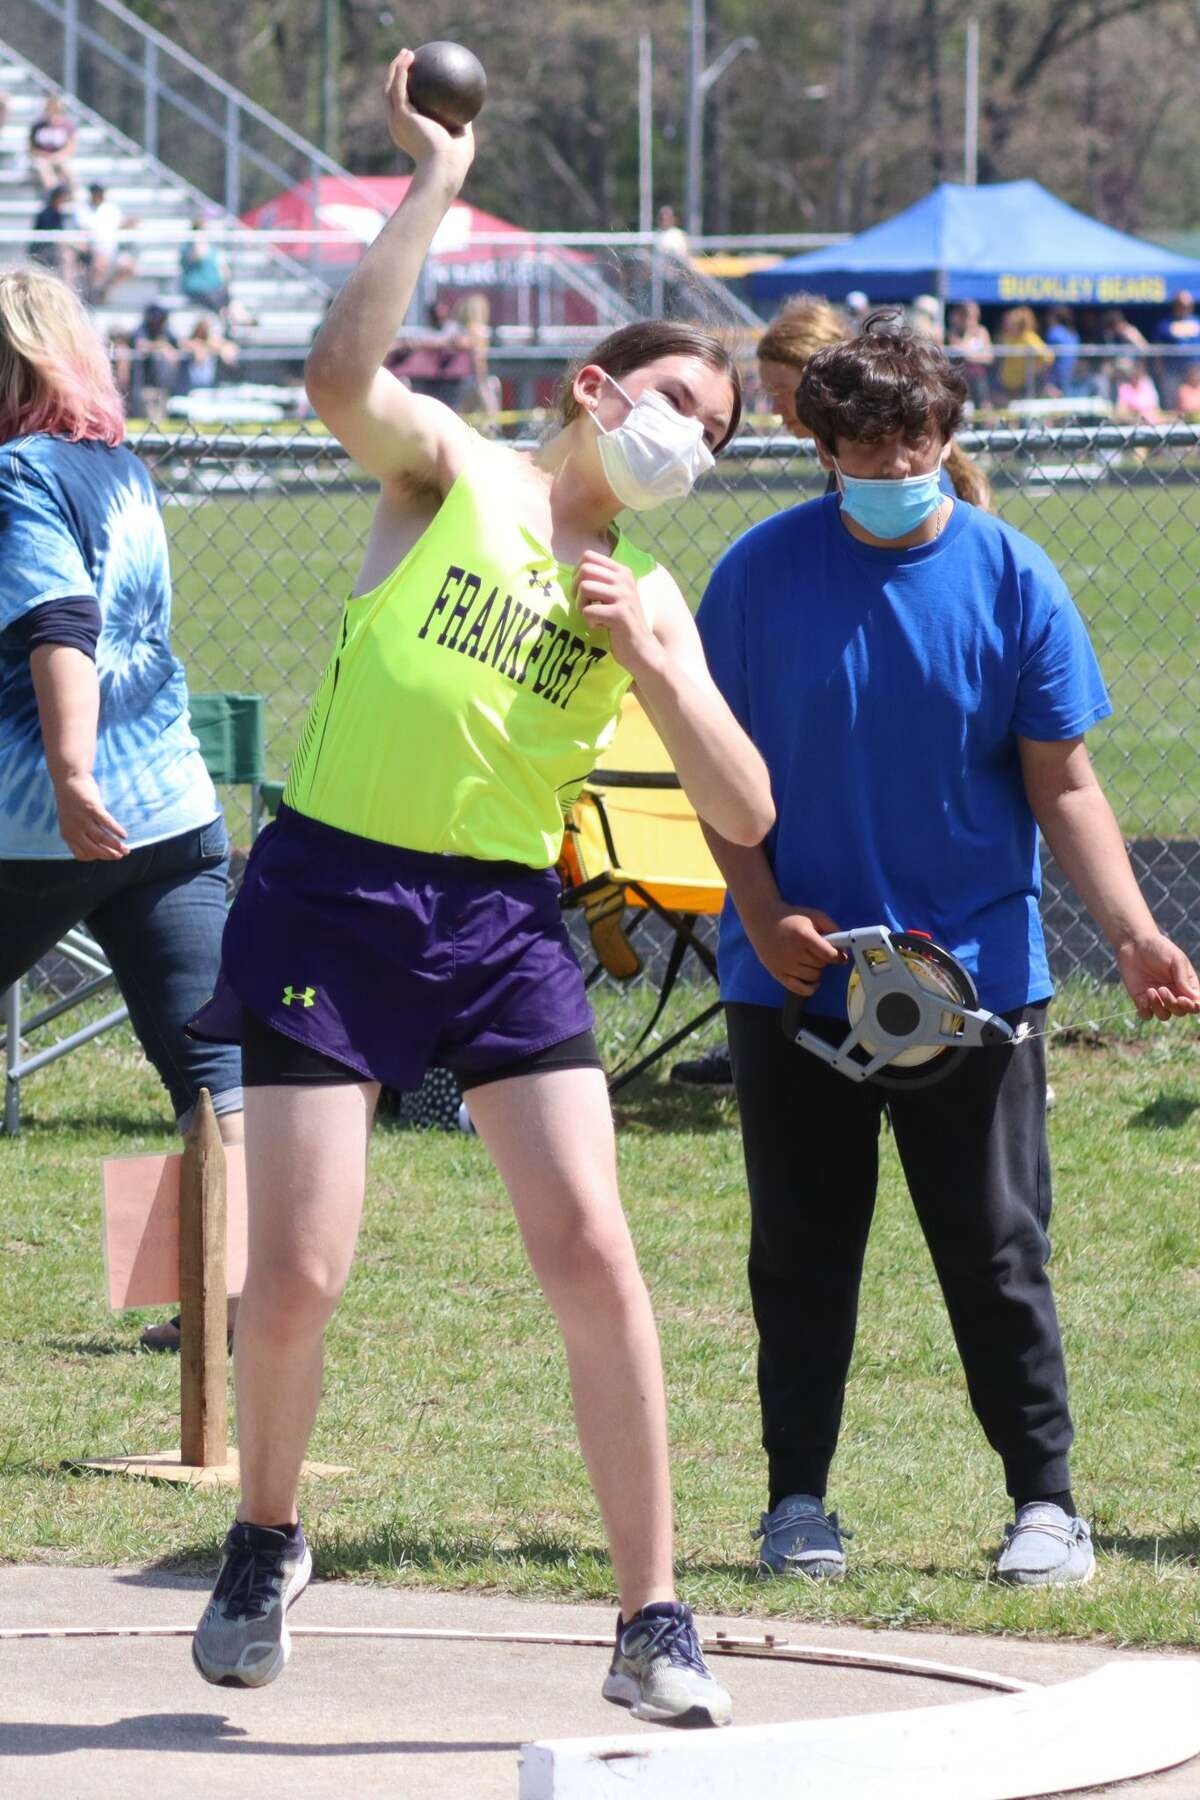 Frankfort's boys track and field team competes at regionals on May 22 at Brethren.